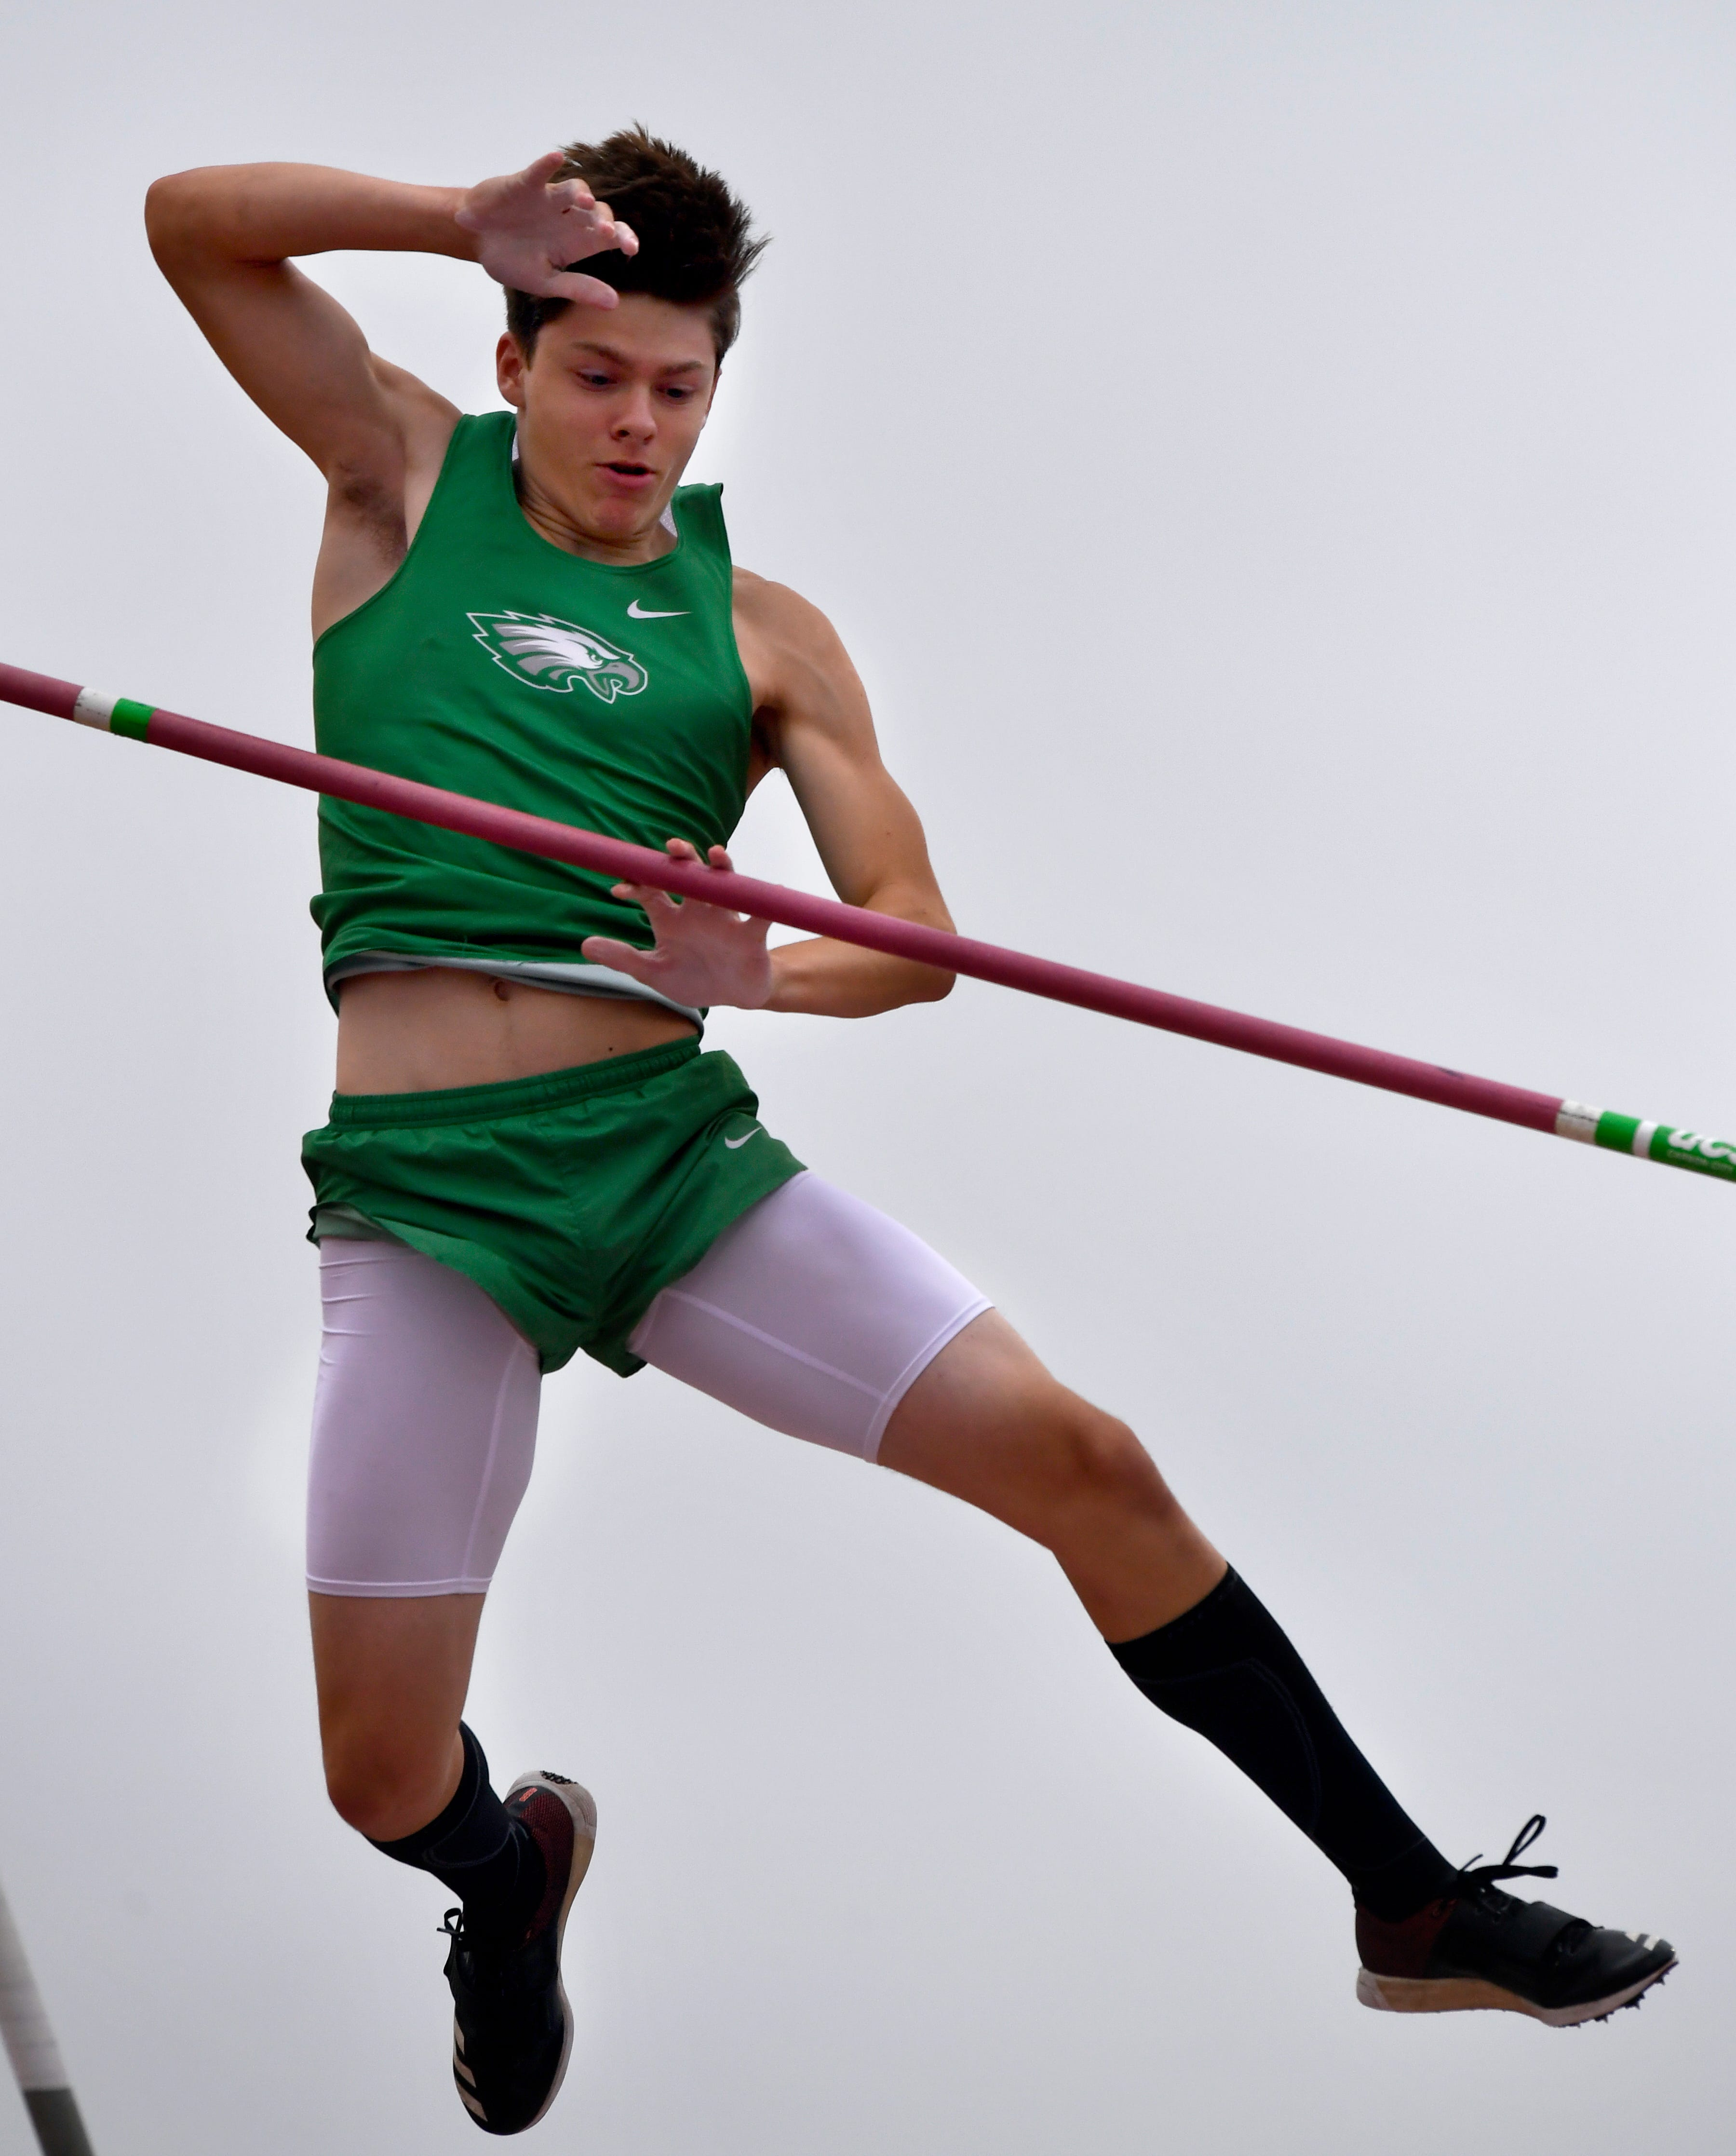 Woodsboro's Anthony Meacham tries to set a record after winning the Class 2A Boys Pole Vault at the UIL State Track & Field Championships in Austin Saturday May 11, 2019.